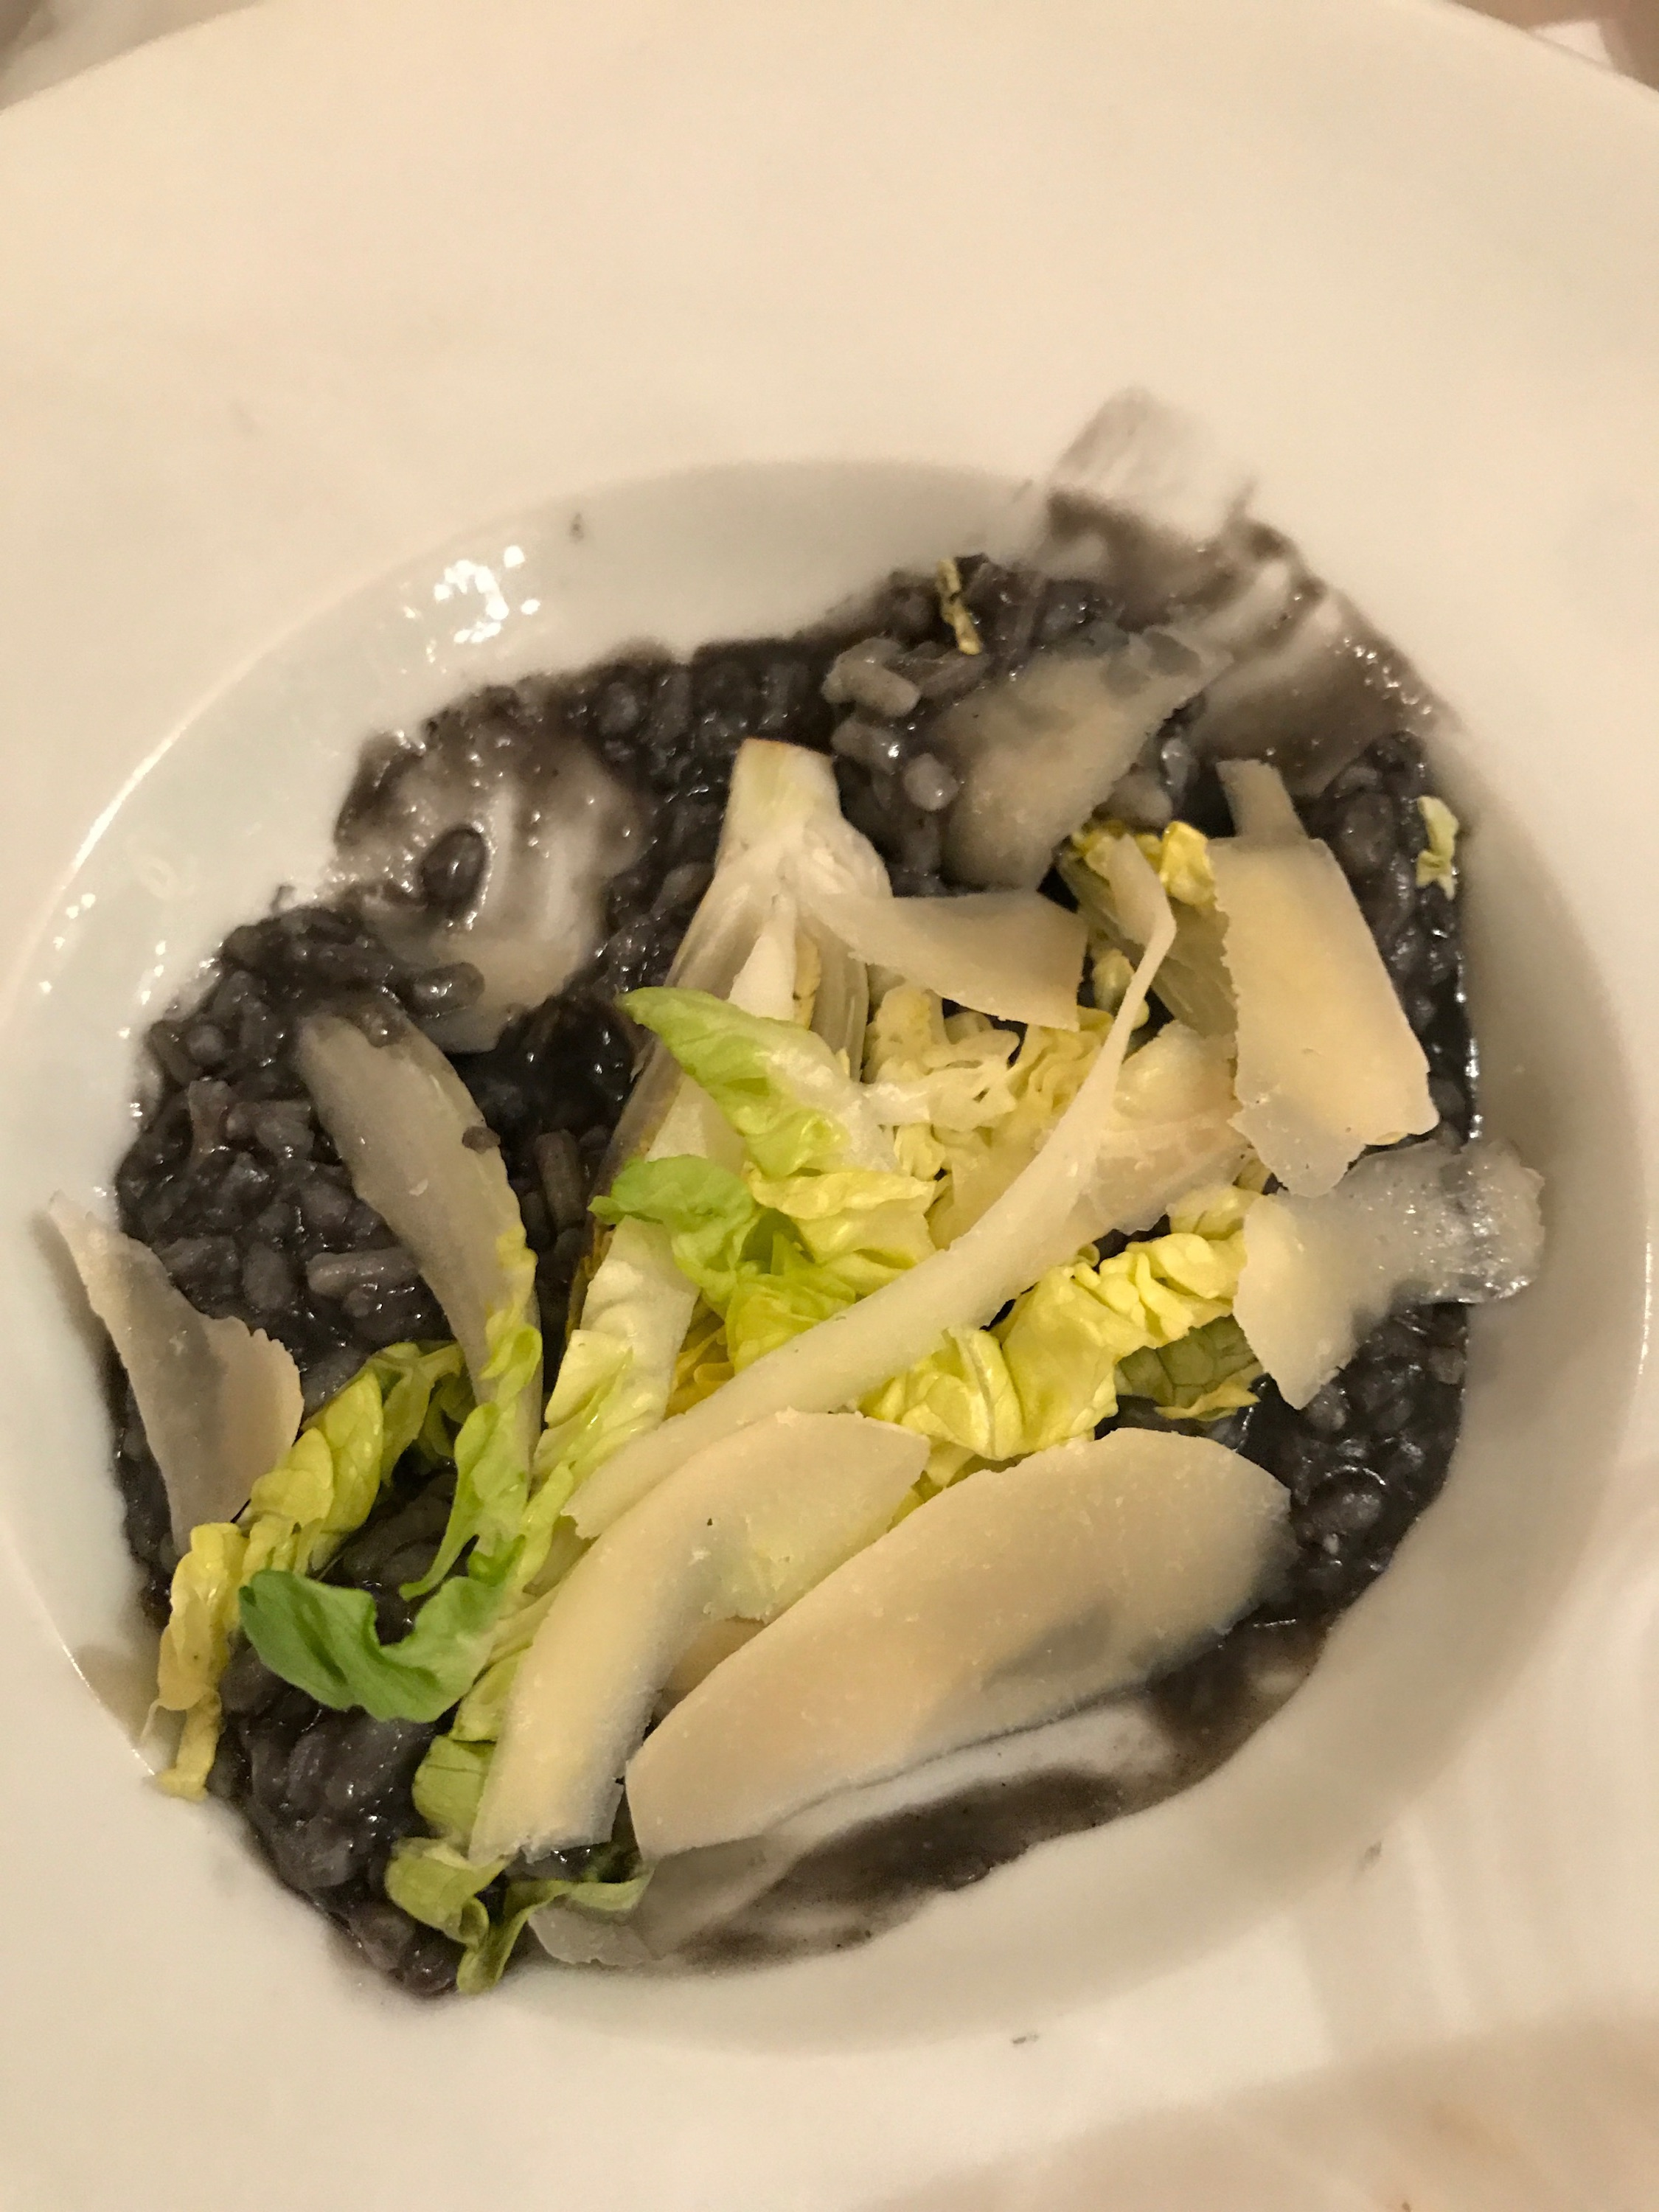 Risotto with ink 🐙